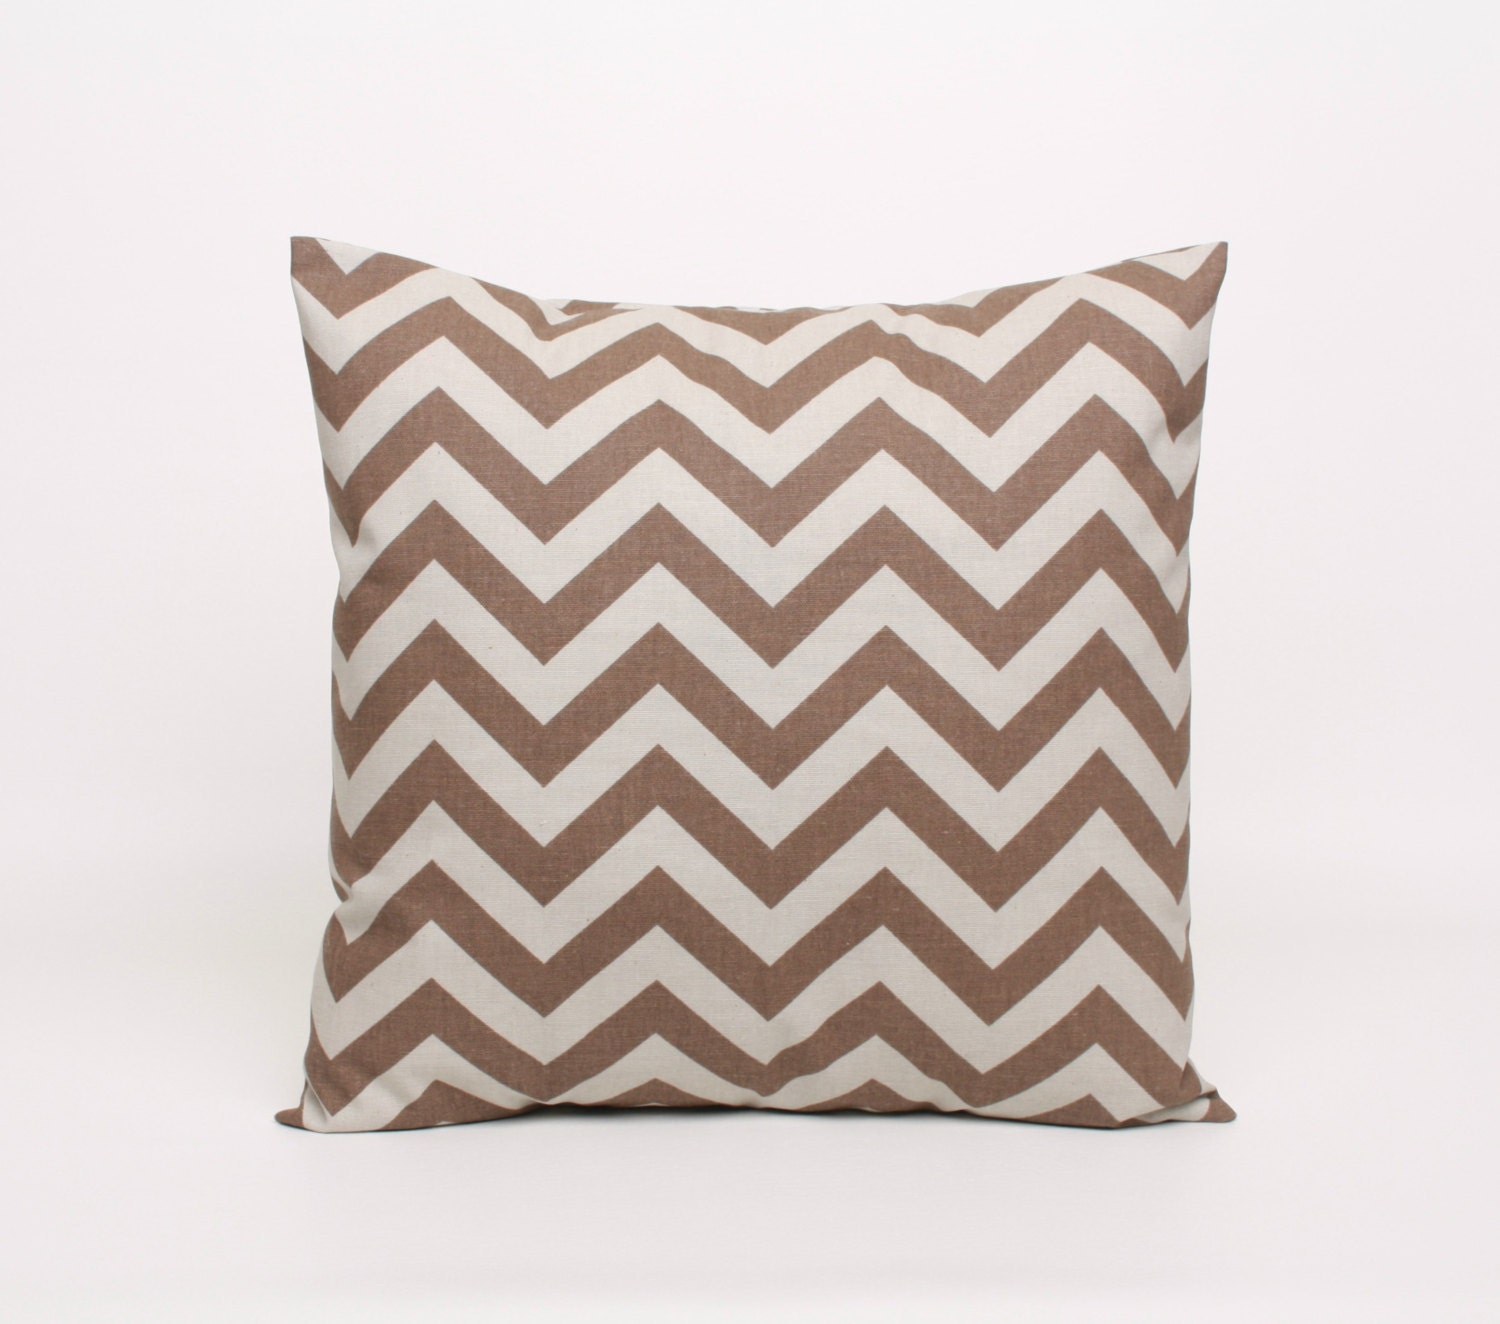 pewter gray and brown chevron pillow cover in premier print. Black Bedroom Furniture Sets. Home Design Ideas